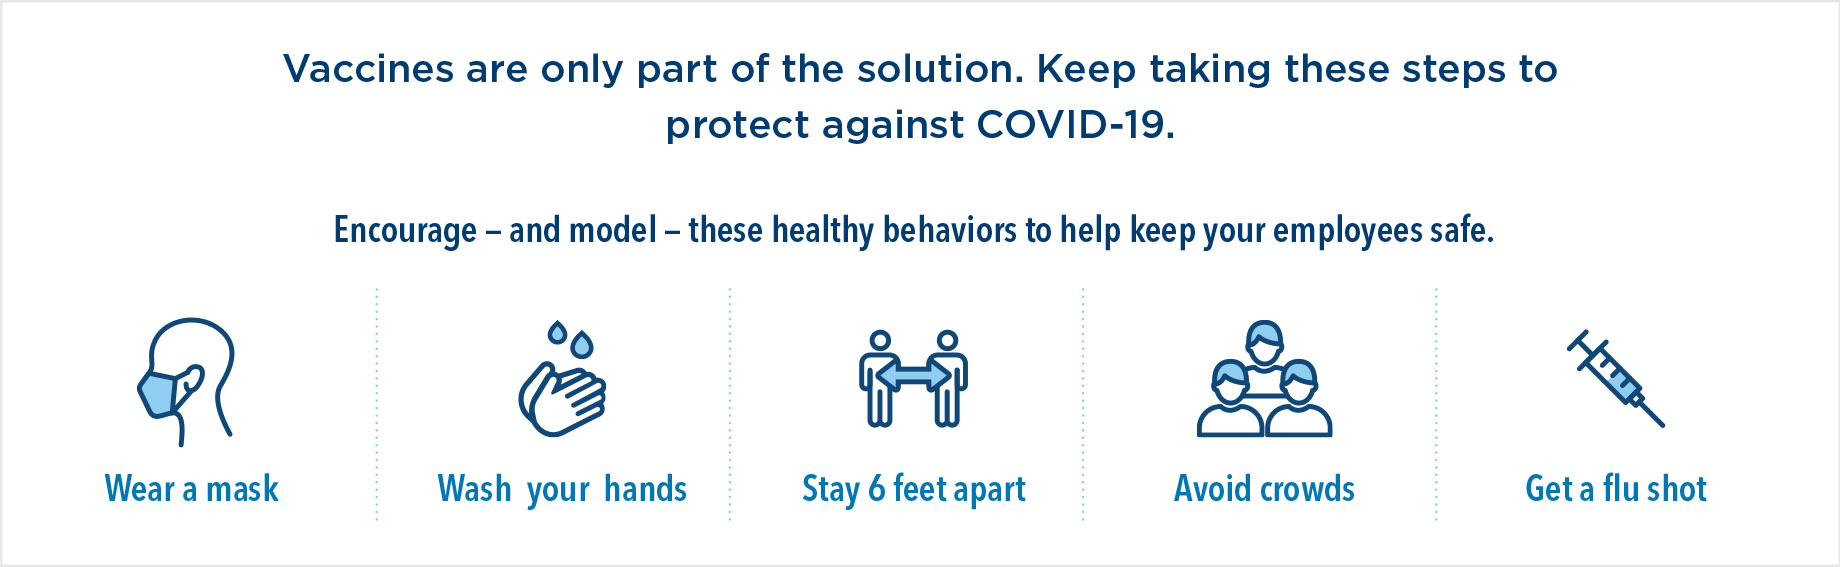 Vaccines are only part of the solution. Keep taking these steps to protect against COVID-19. Encourage — and model — these healthy behaviors to help keep your employees safe. Wear a mask, wash your hands, stay 6 feet apart, avoid crowds, and get a flu shot.